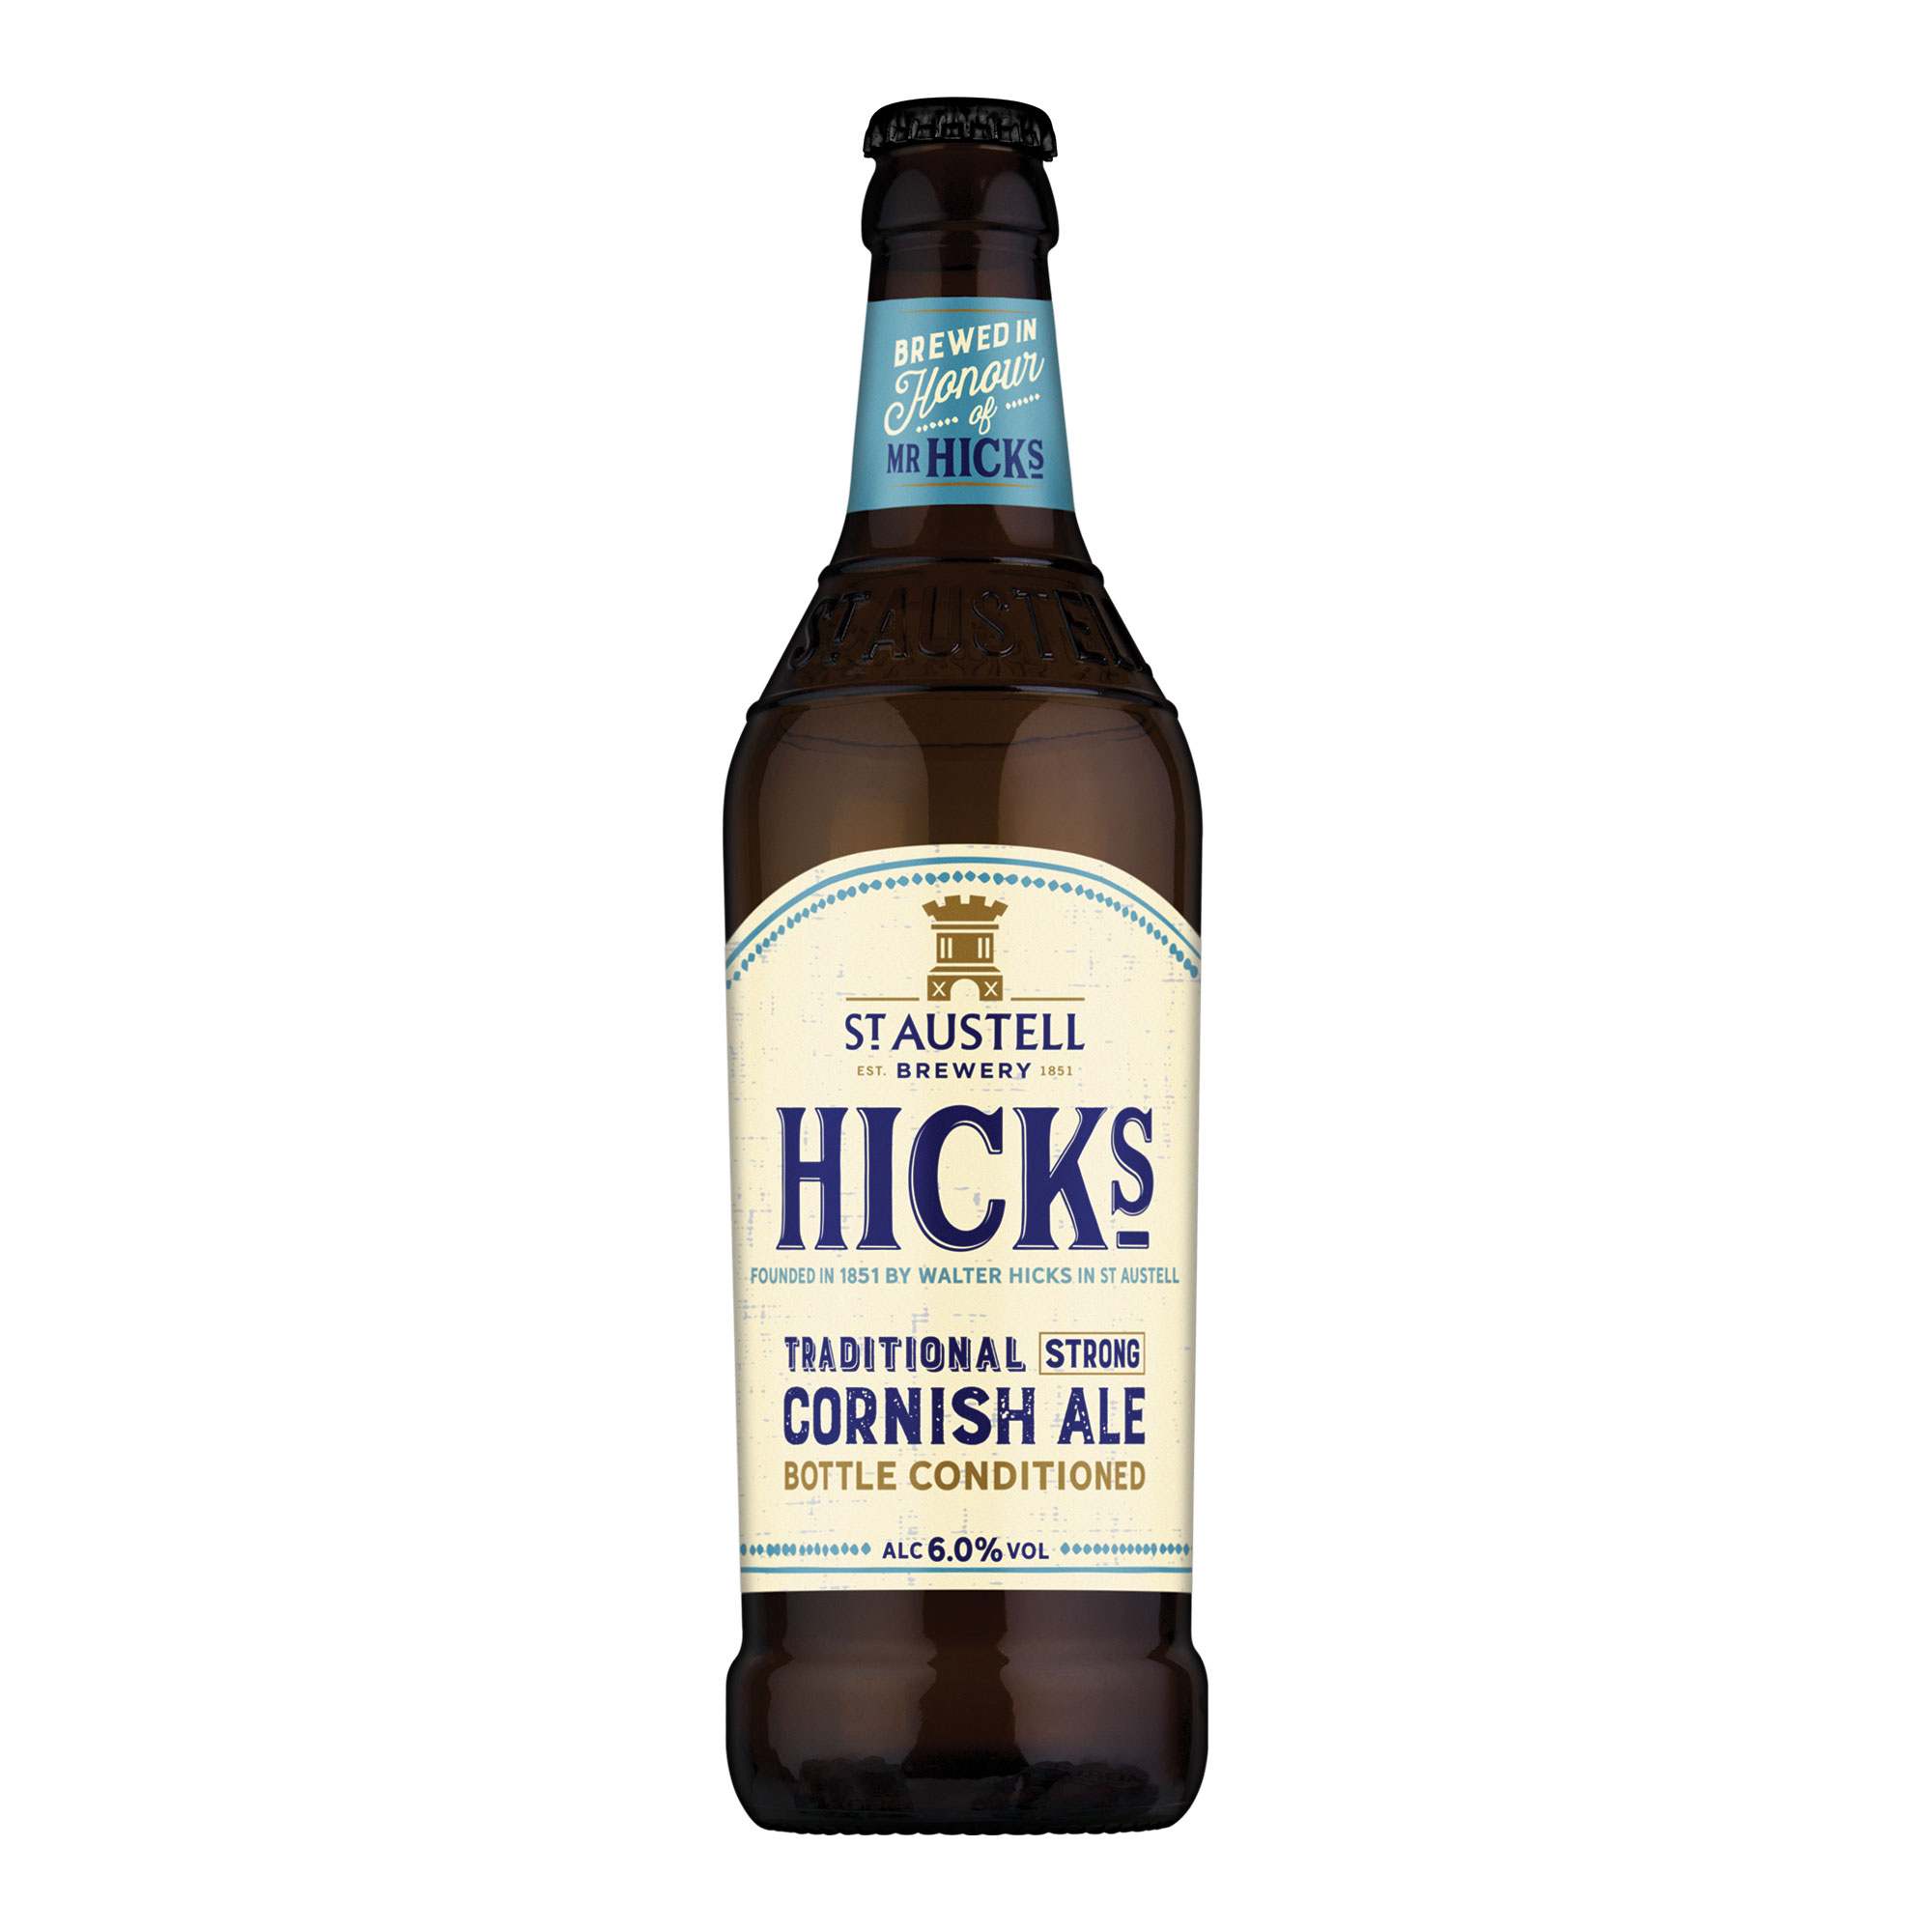 Hicks—NEW-Bottle